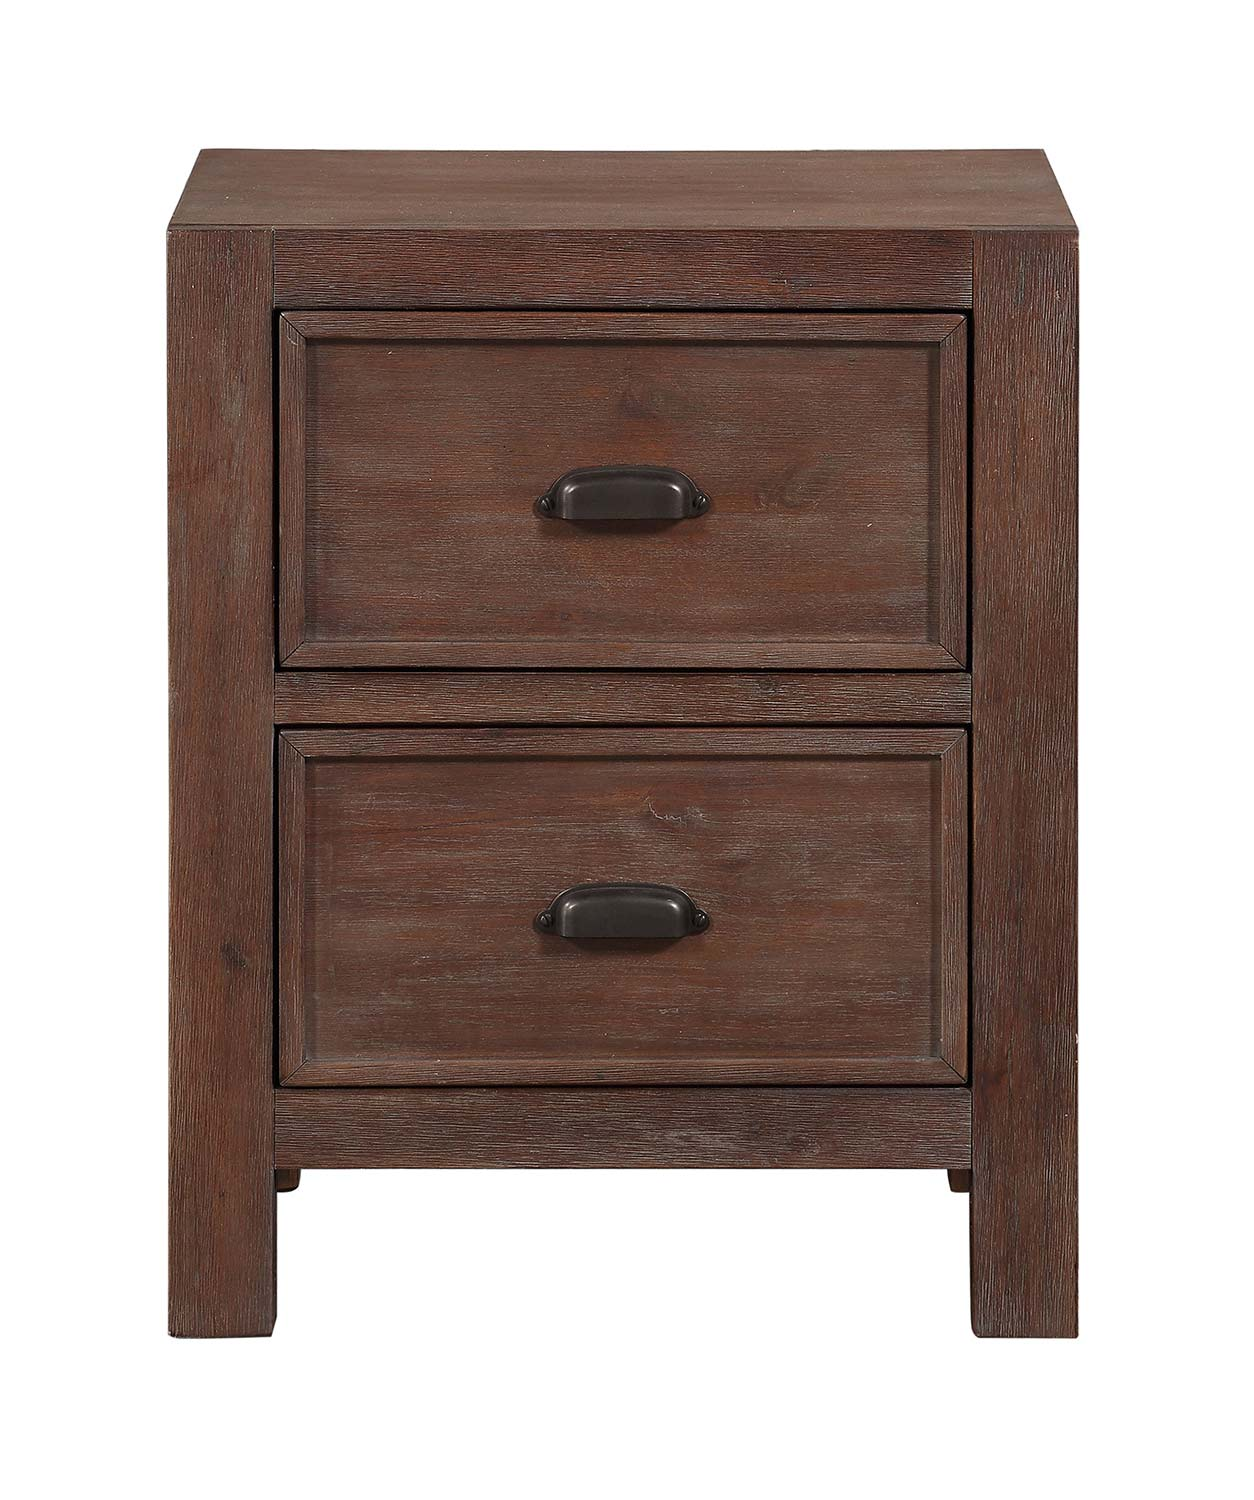 Homelegance Wrangell Night Stand - Medium Cherry